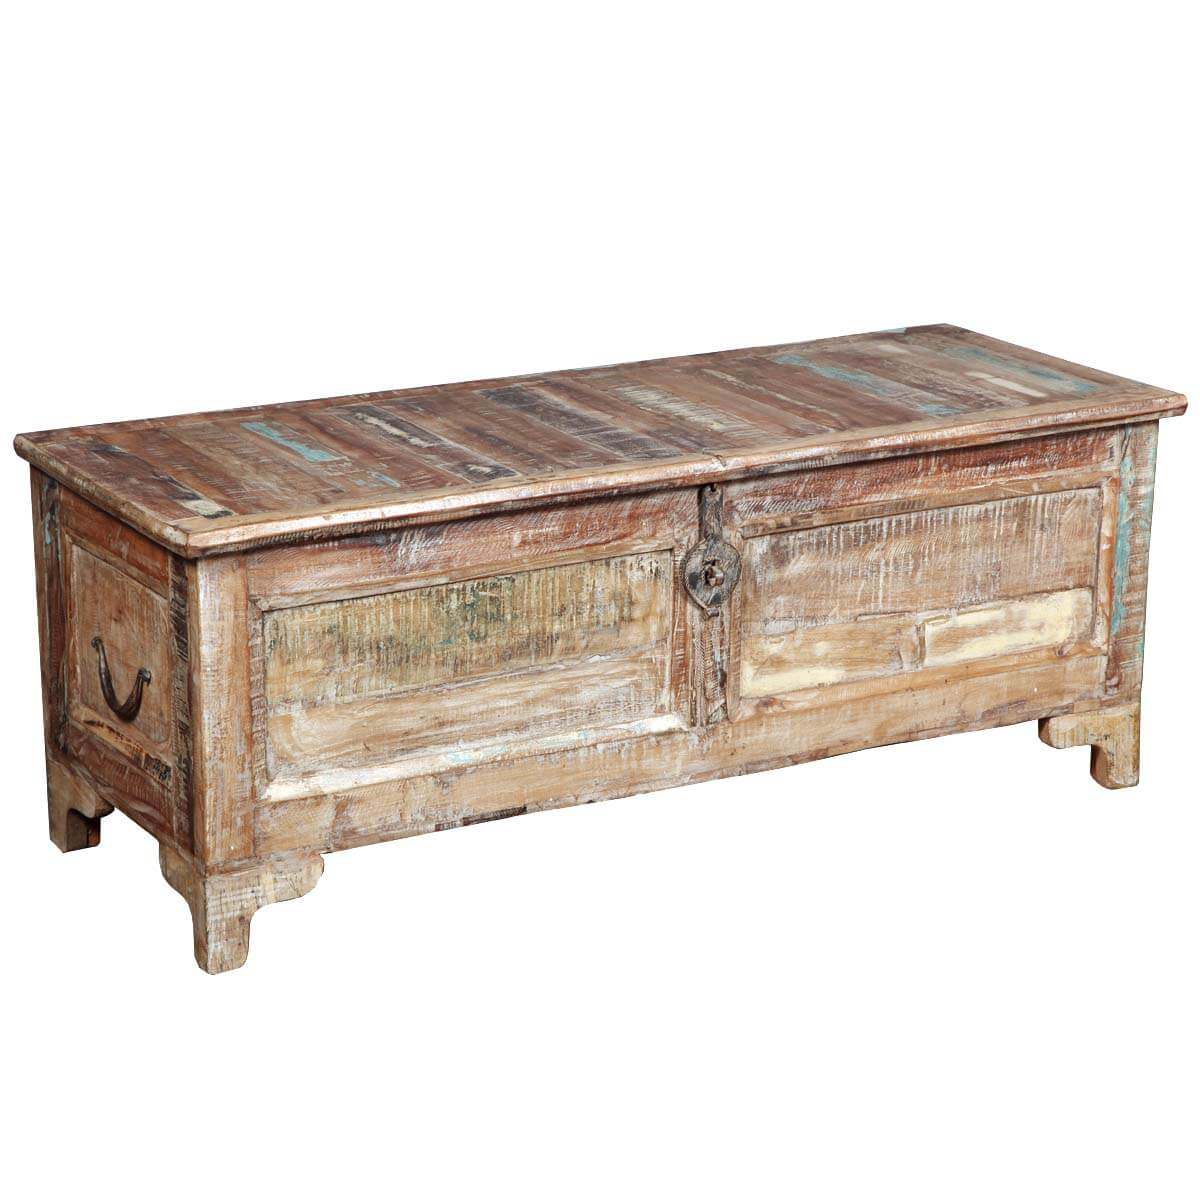 Wood Coffee Table With Storage Rustic Reclaimed Wood Storage Coffee Table Chest